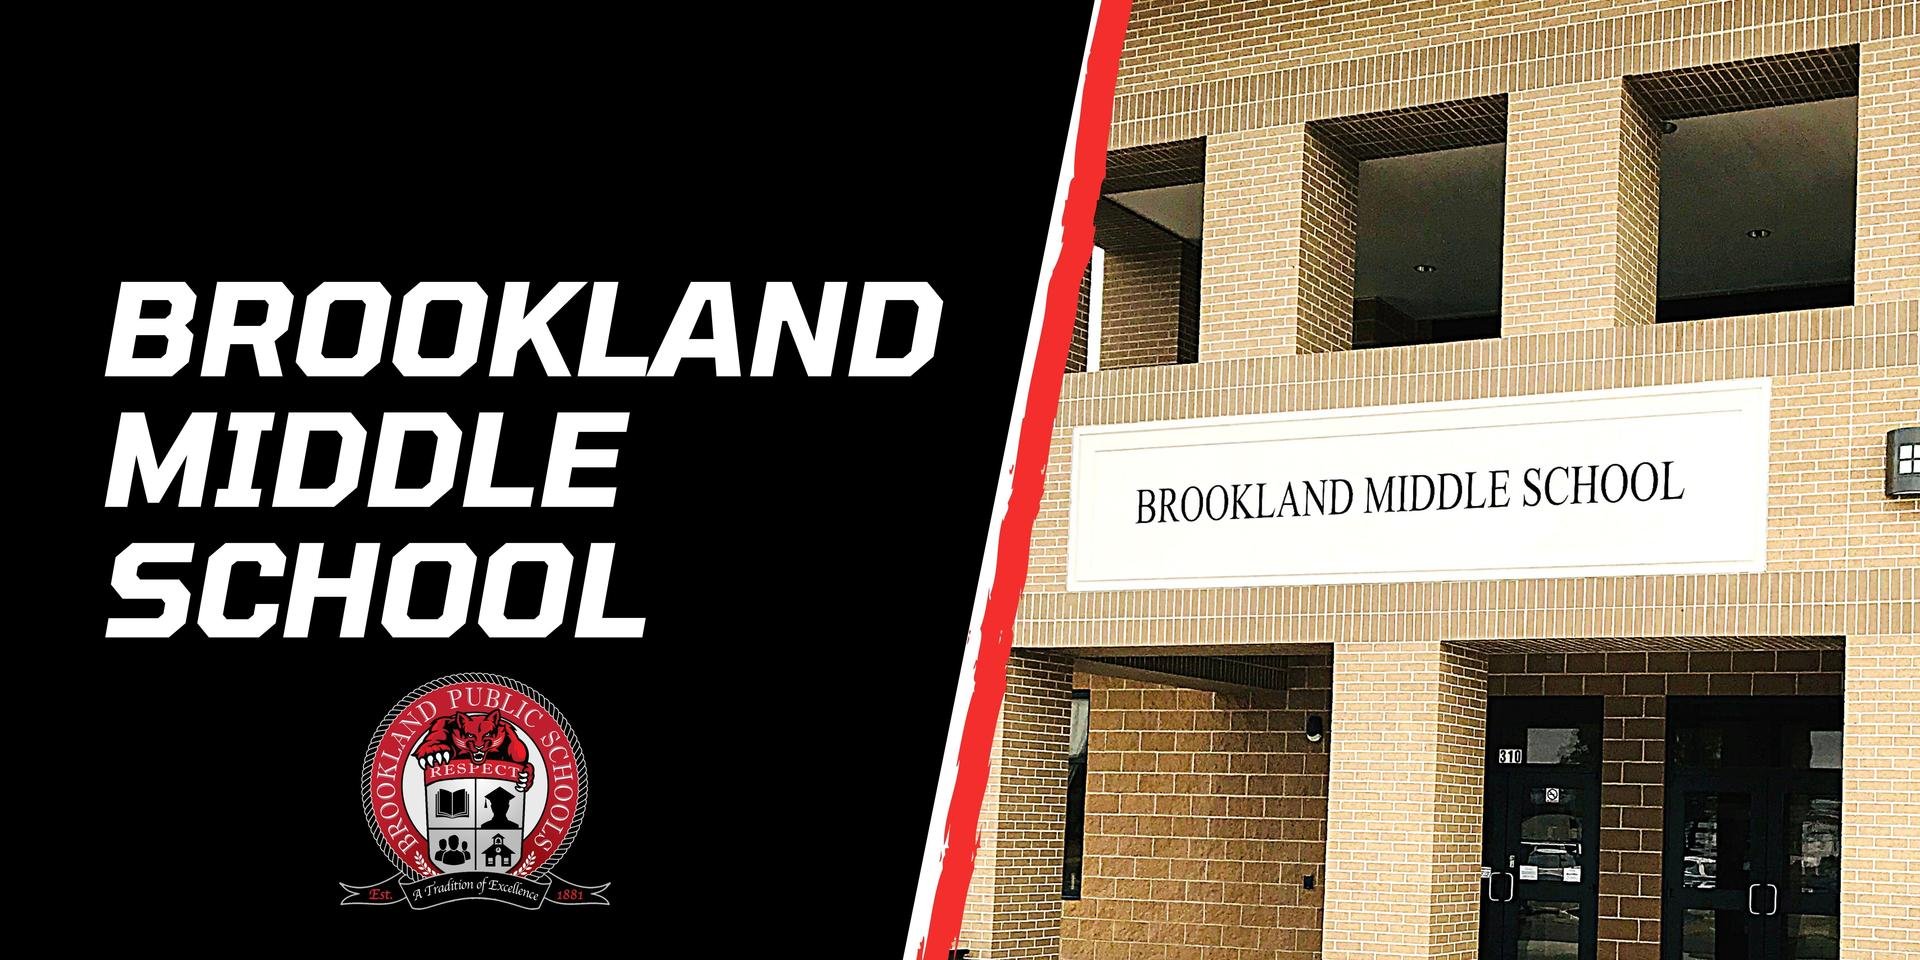 BMS Banner pic with bearcat logo on gray background